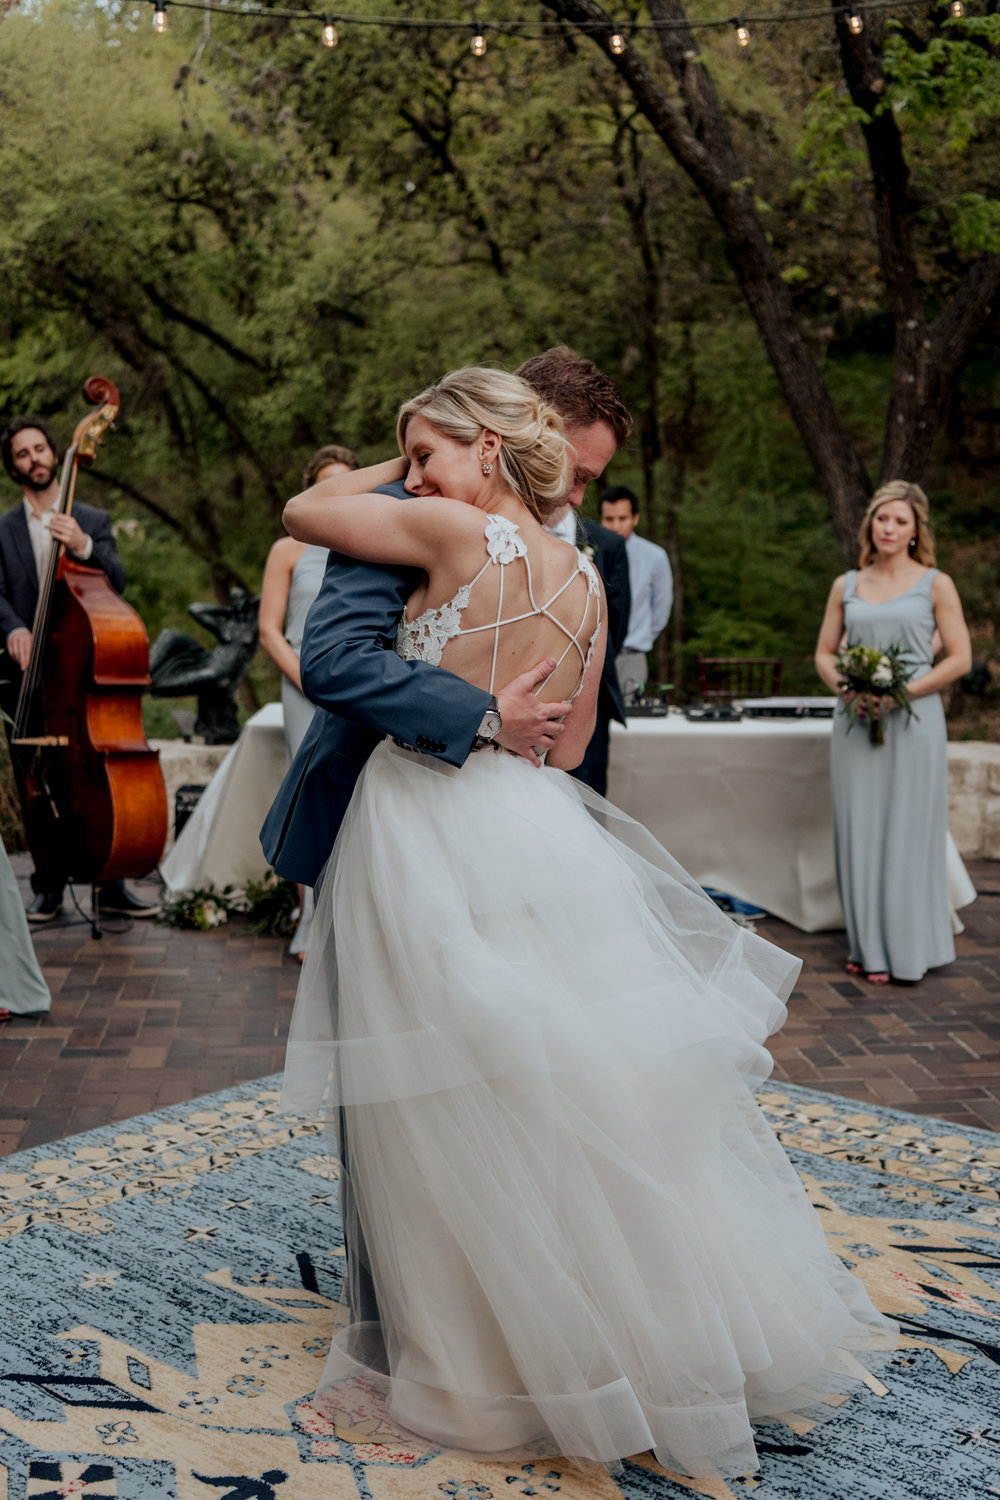 Matt-Kim-Wedding-Preview-76.jpg